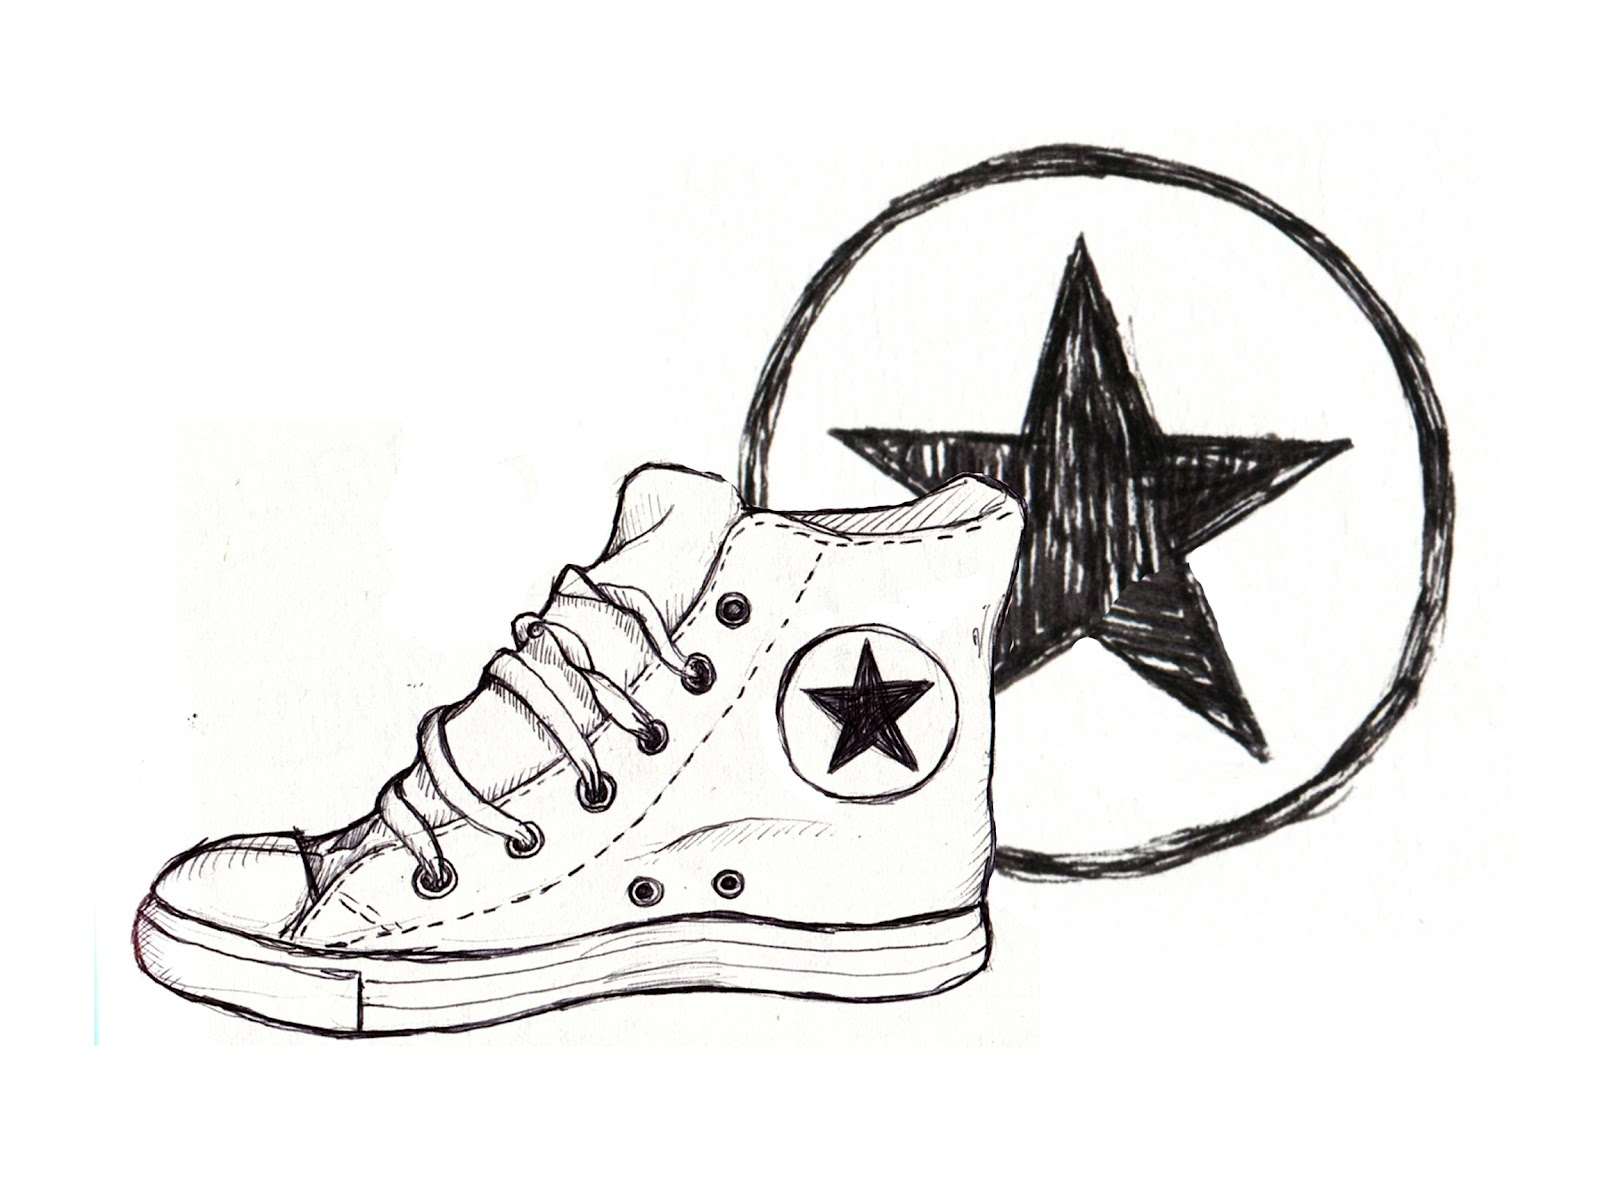 Converse Shoes Drawing at GetDrawings.com | Free for ...